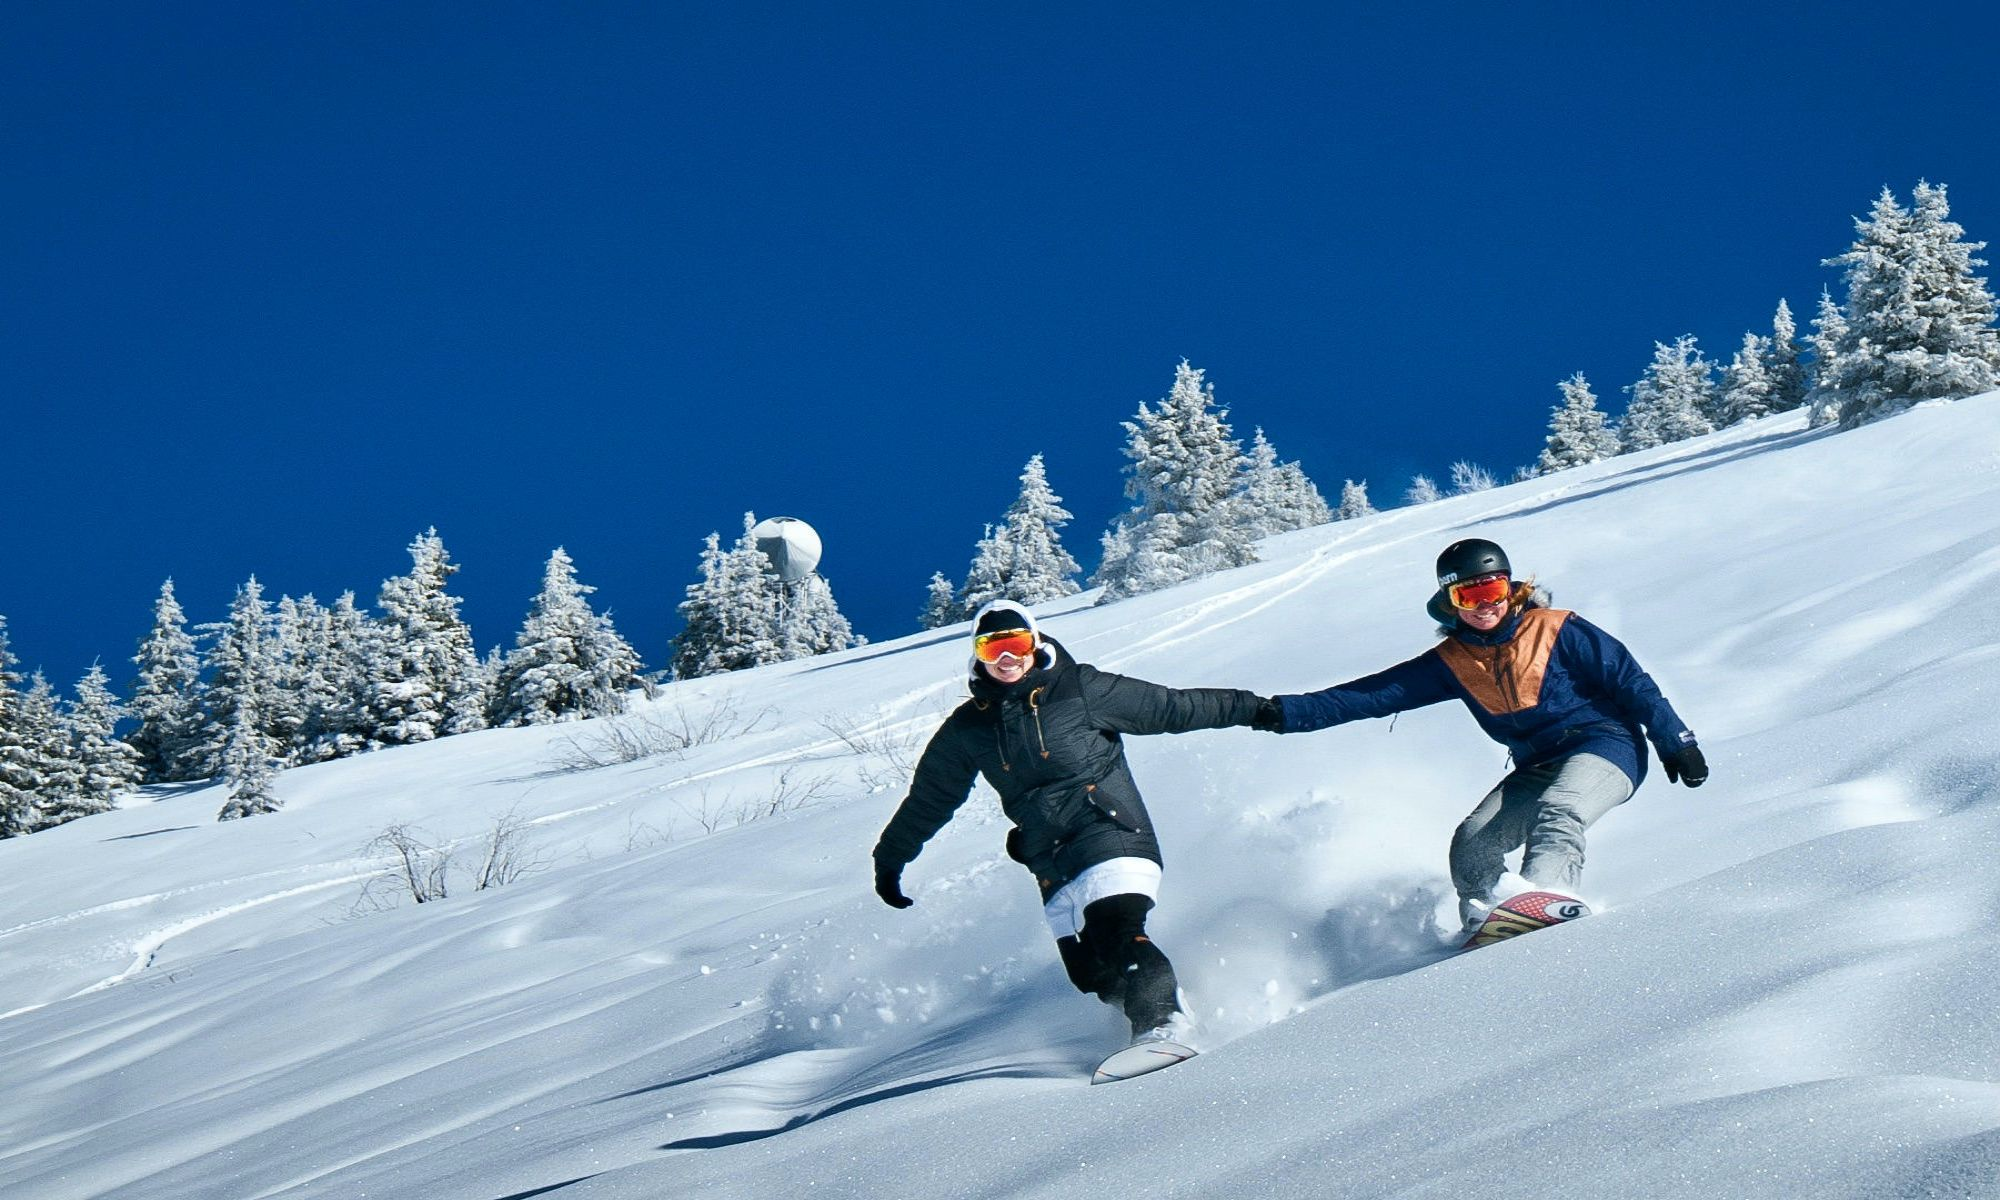 Two snowboarders freeriding on fresh snow at Avoriaz.